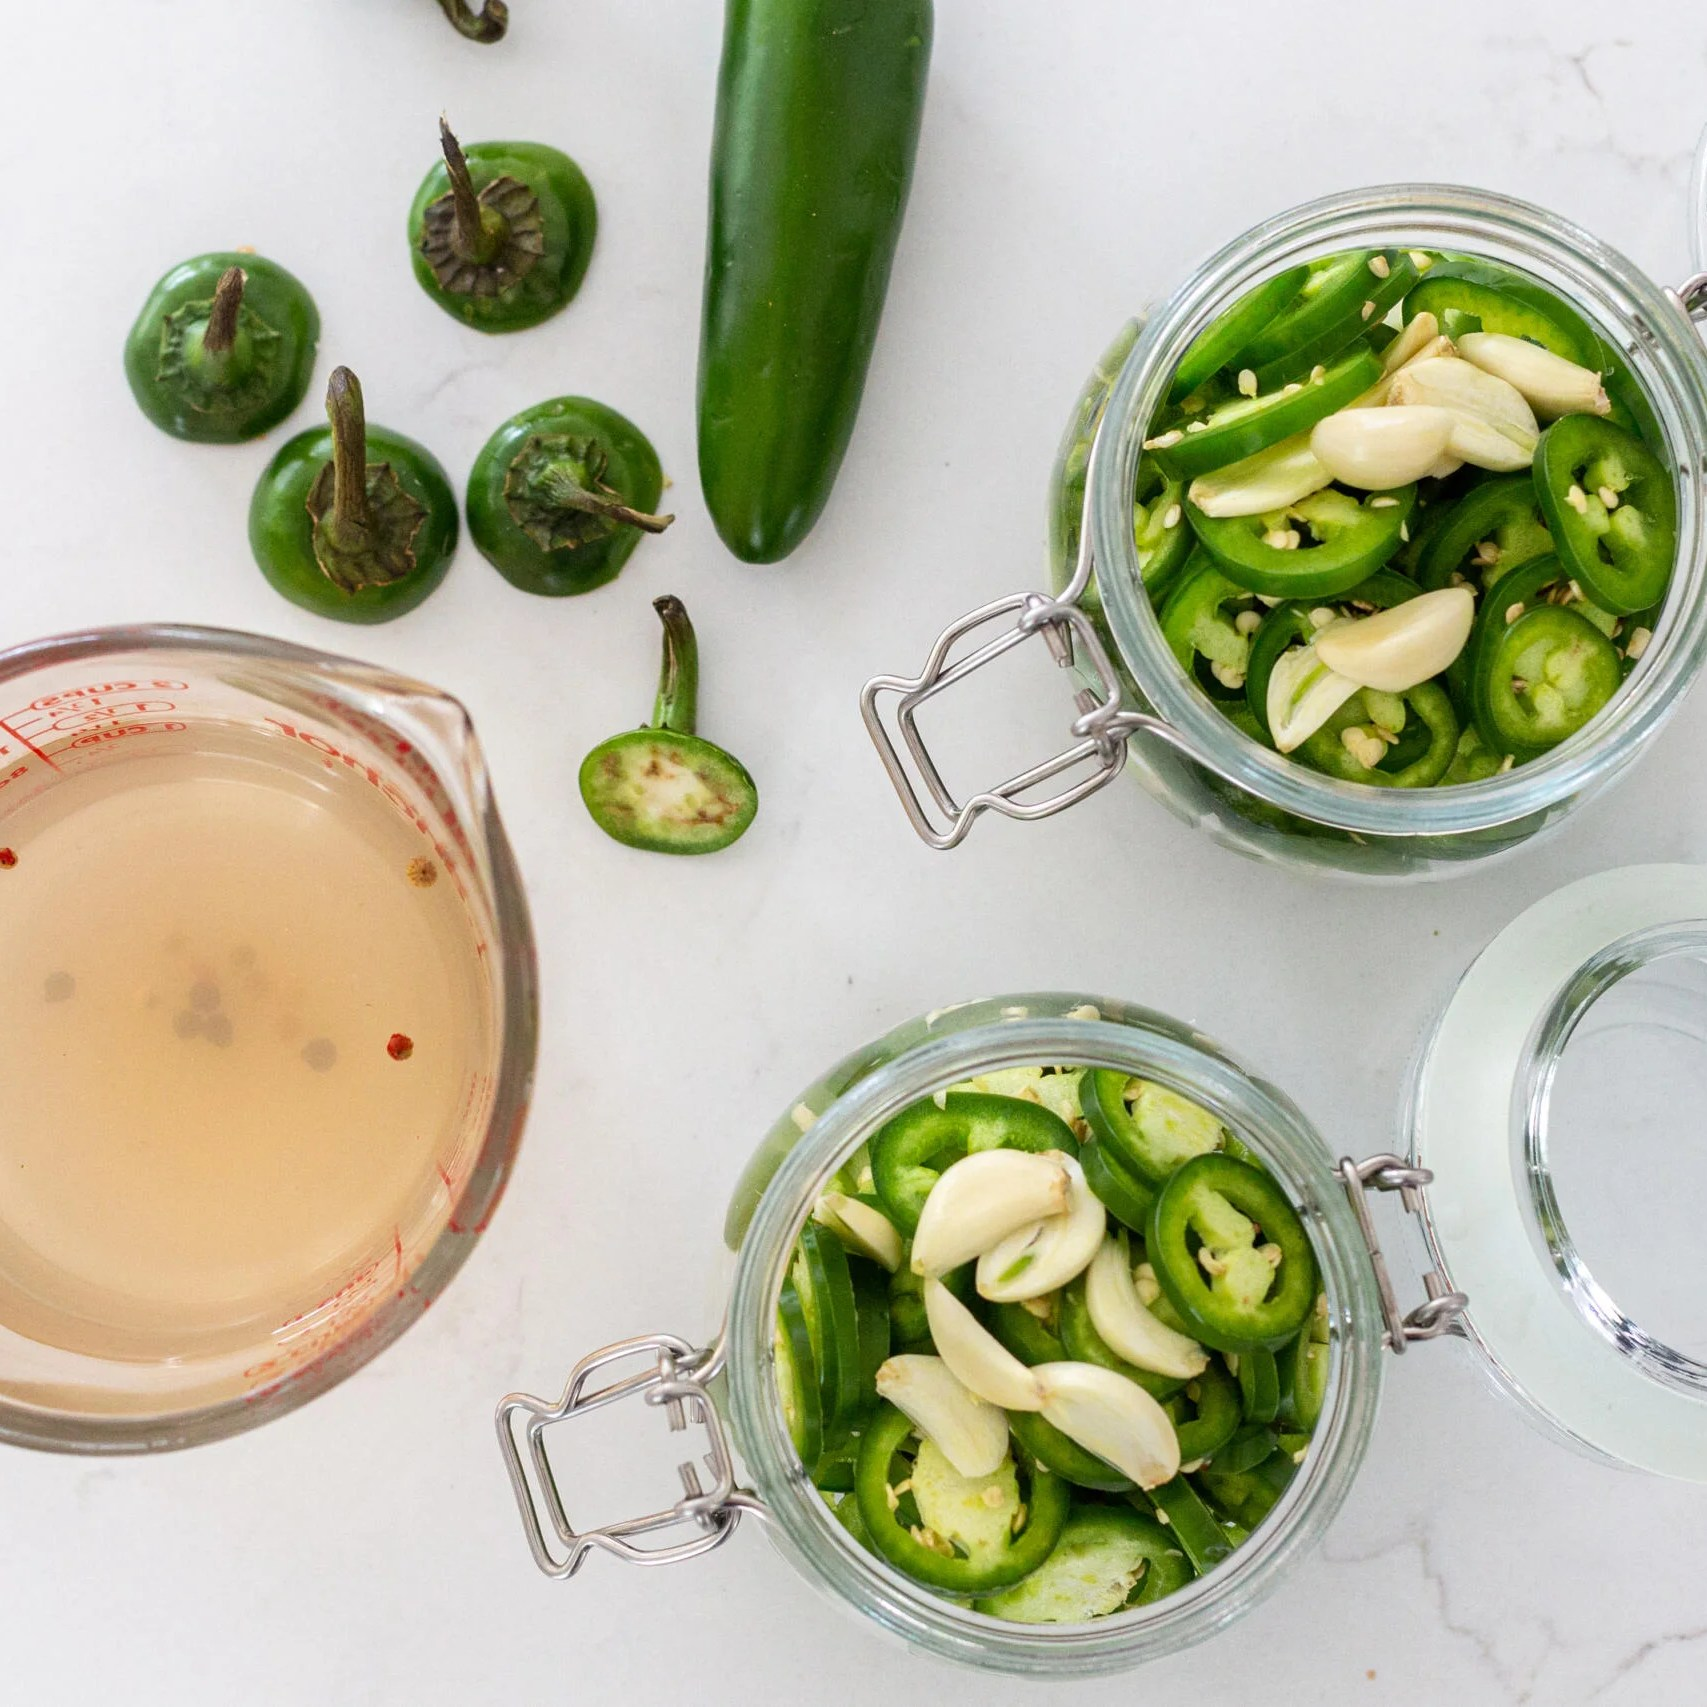 sliced Jalapenos with marinade and jars